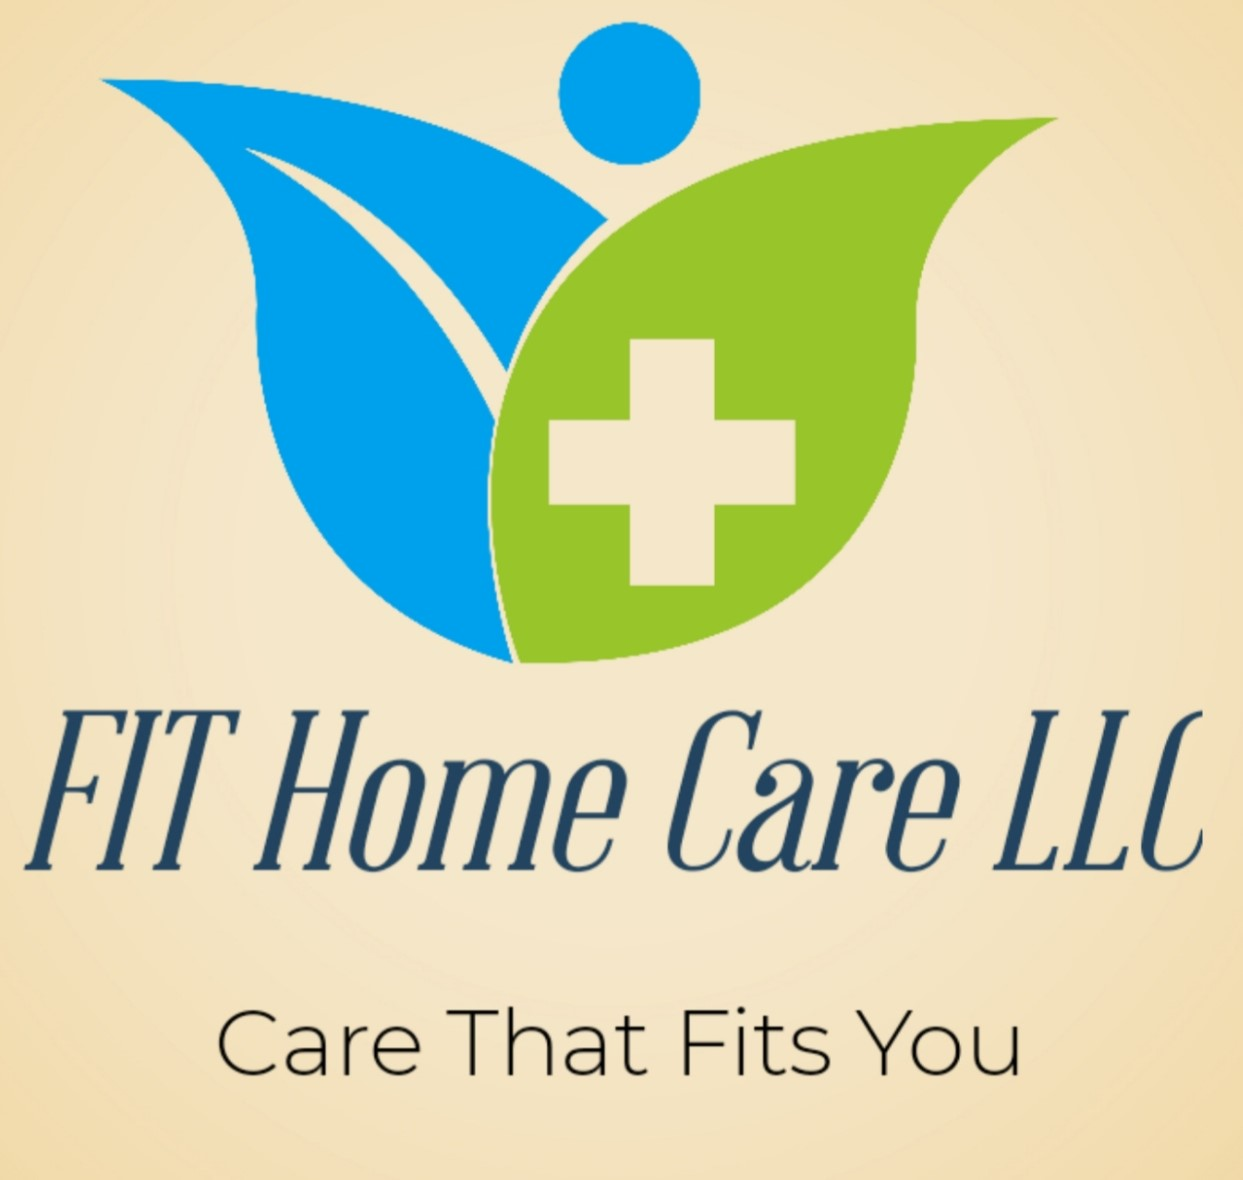 FIT Home Care LLC image